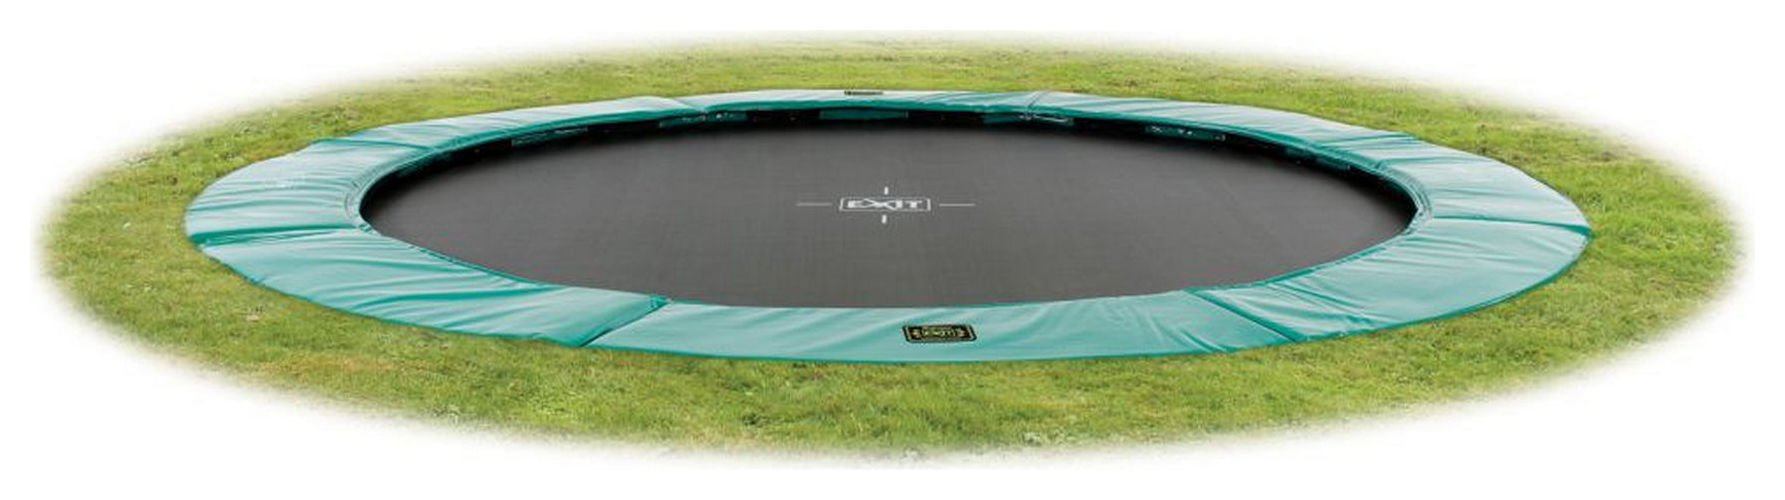 EXIT EXIT - 12ft Supreme Ground Level - Trampoline